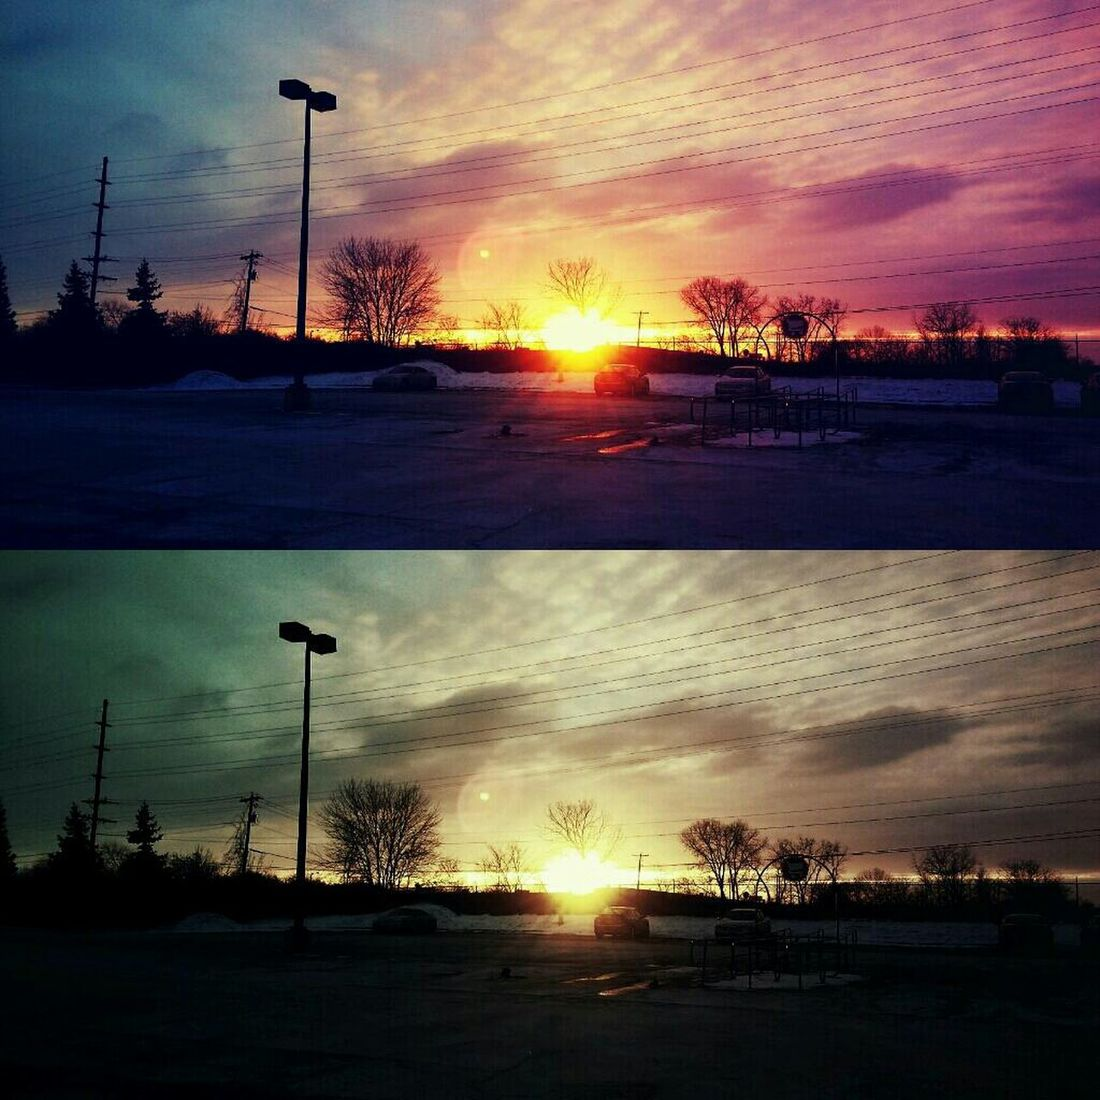 MESSING AROUND WITH PHOTOSHOP. WHICH ONE IS YOUR FAVORITE EDIT. PHOTO TAKEN ON SAMSUNG GS3 AND EDITED ON PHOTOSHOP CS6.